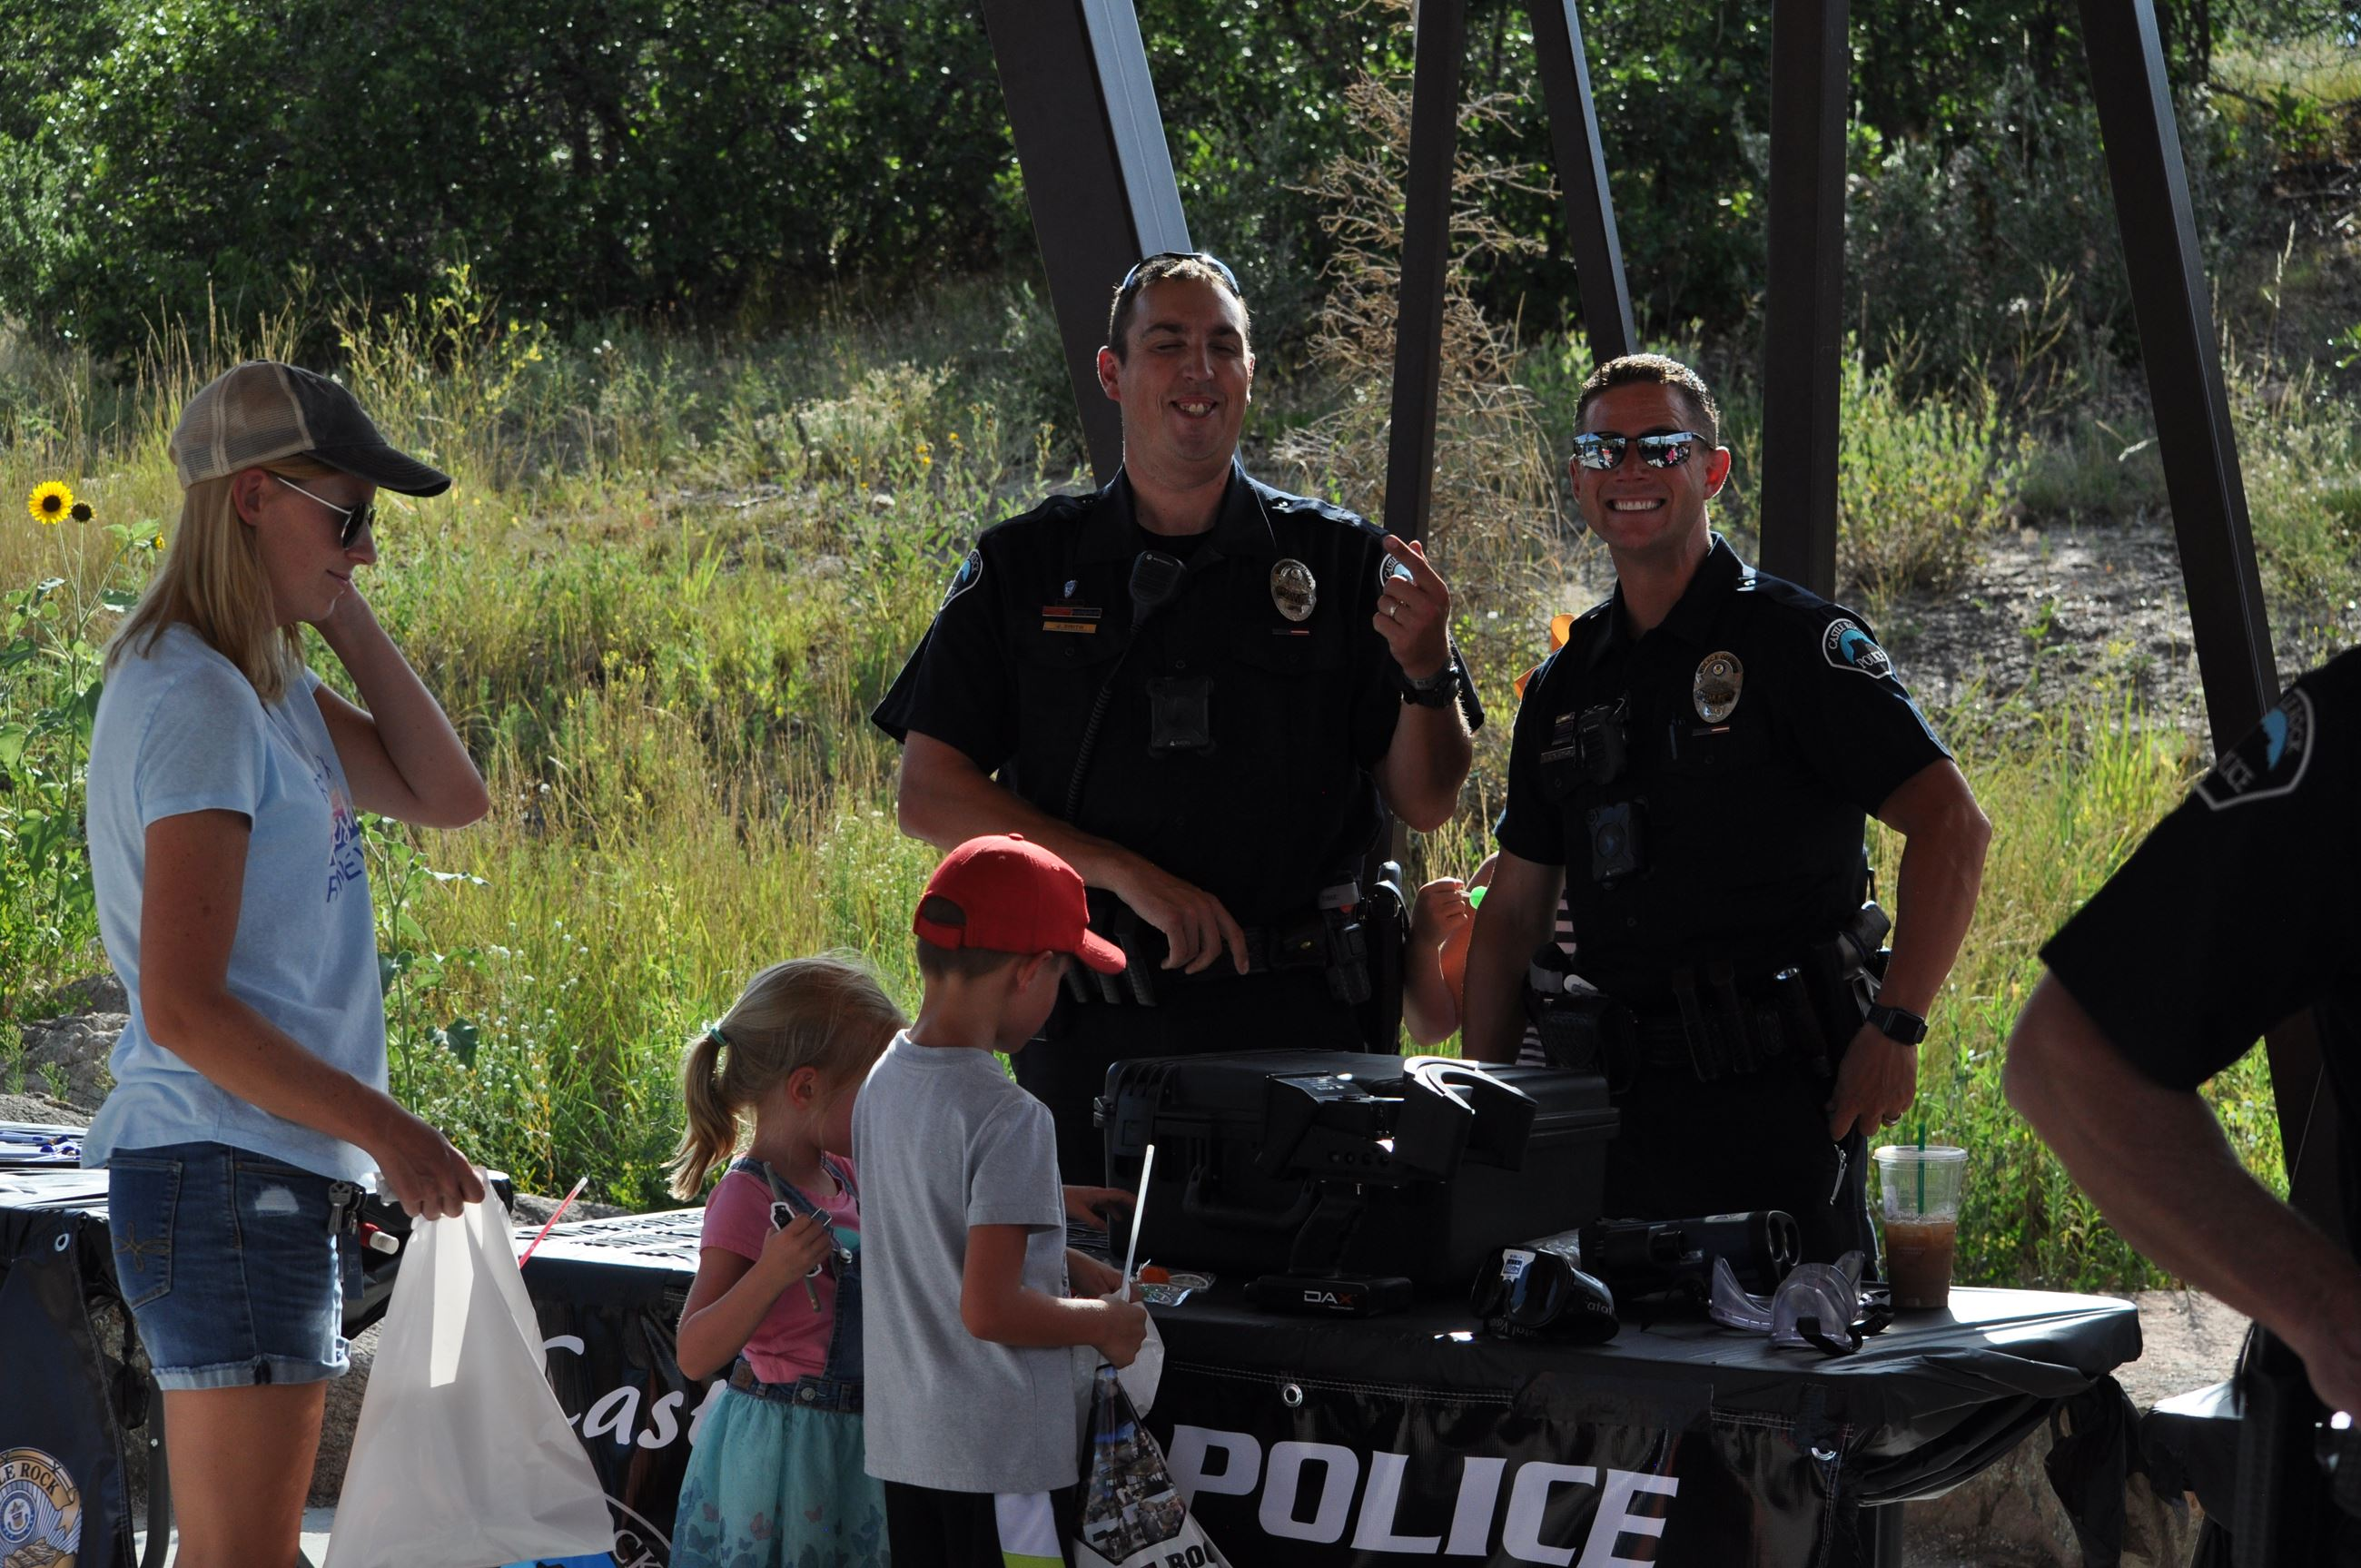 National Night Out photo of officers with children at a table